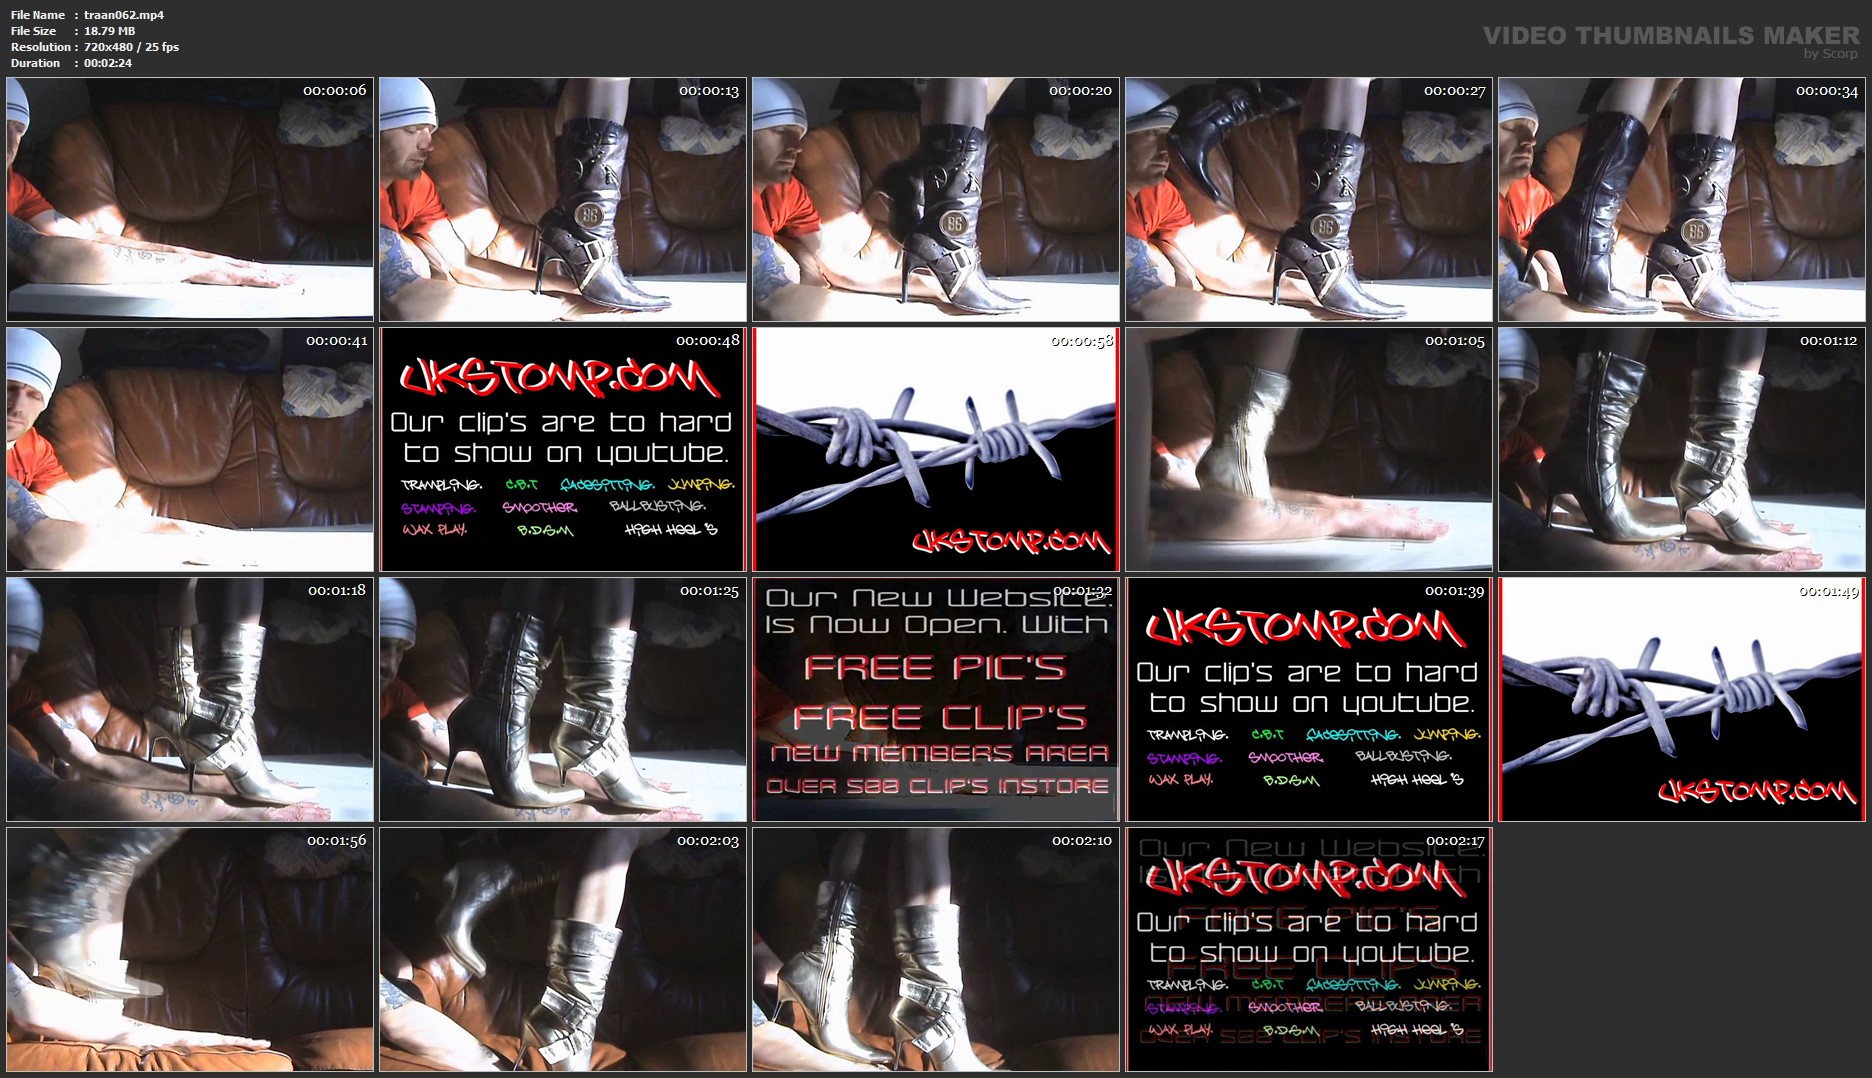 3 SHORT BANNED YOUTUBE ADDS (NOT HERD BUT STILL BANNED) - UK STOMP / TRAMPLE ANGEL - SD/480p/MP4